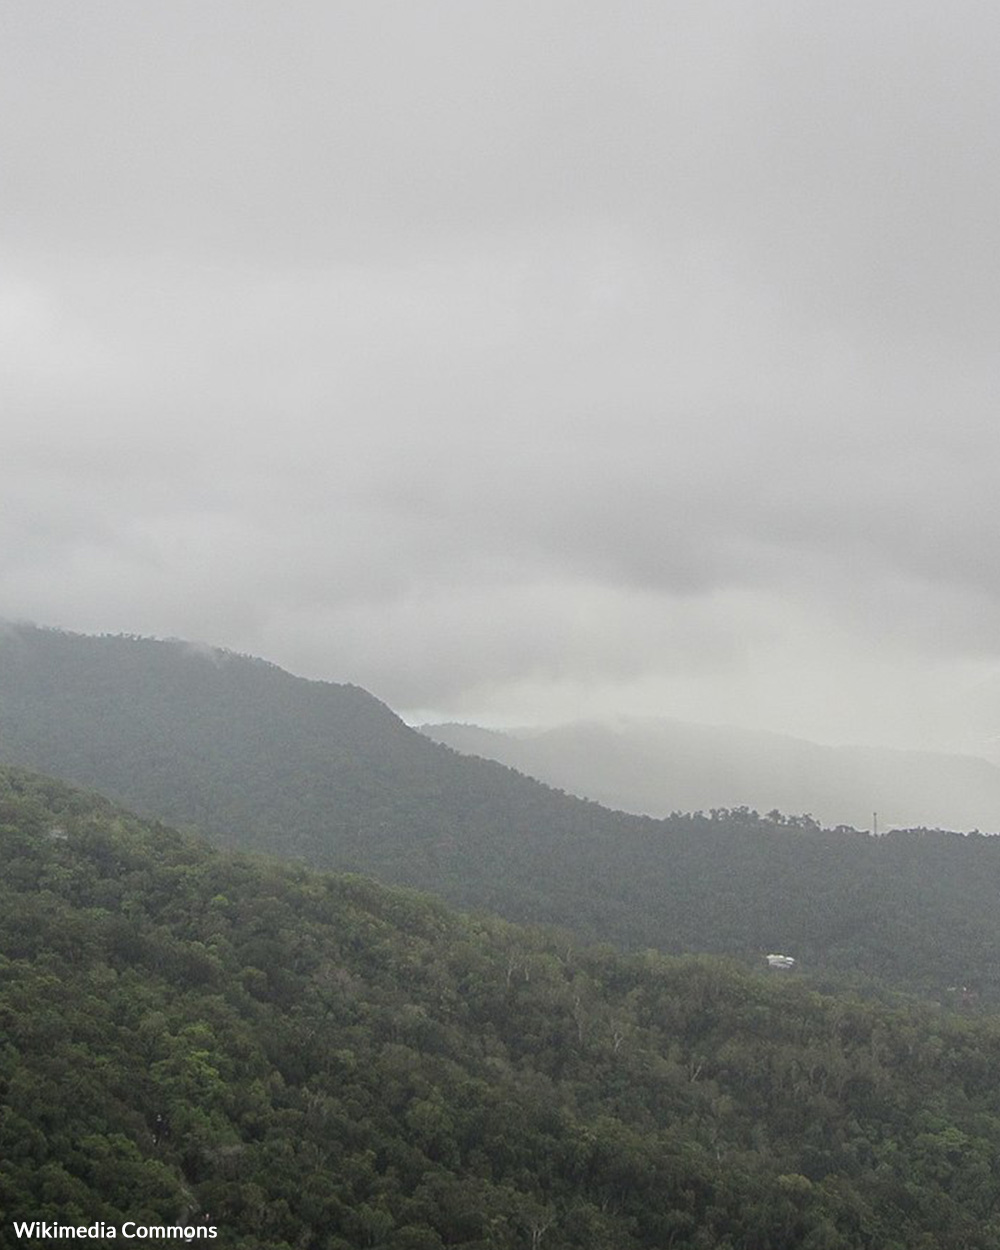 The Daintree Rainforest was handed over to the Eastern Kuku Yalanji by the Queensland government.